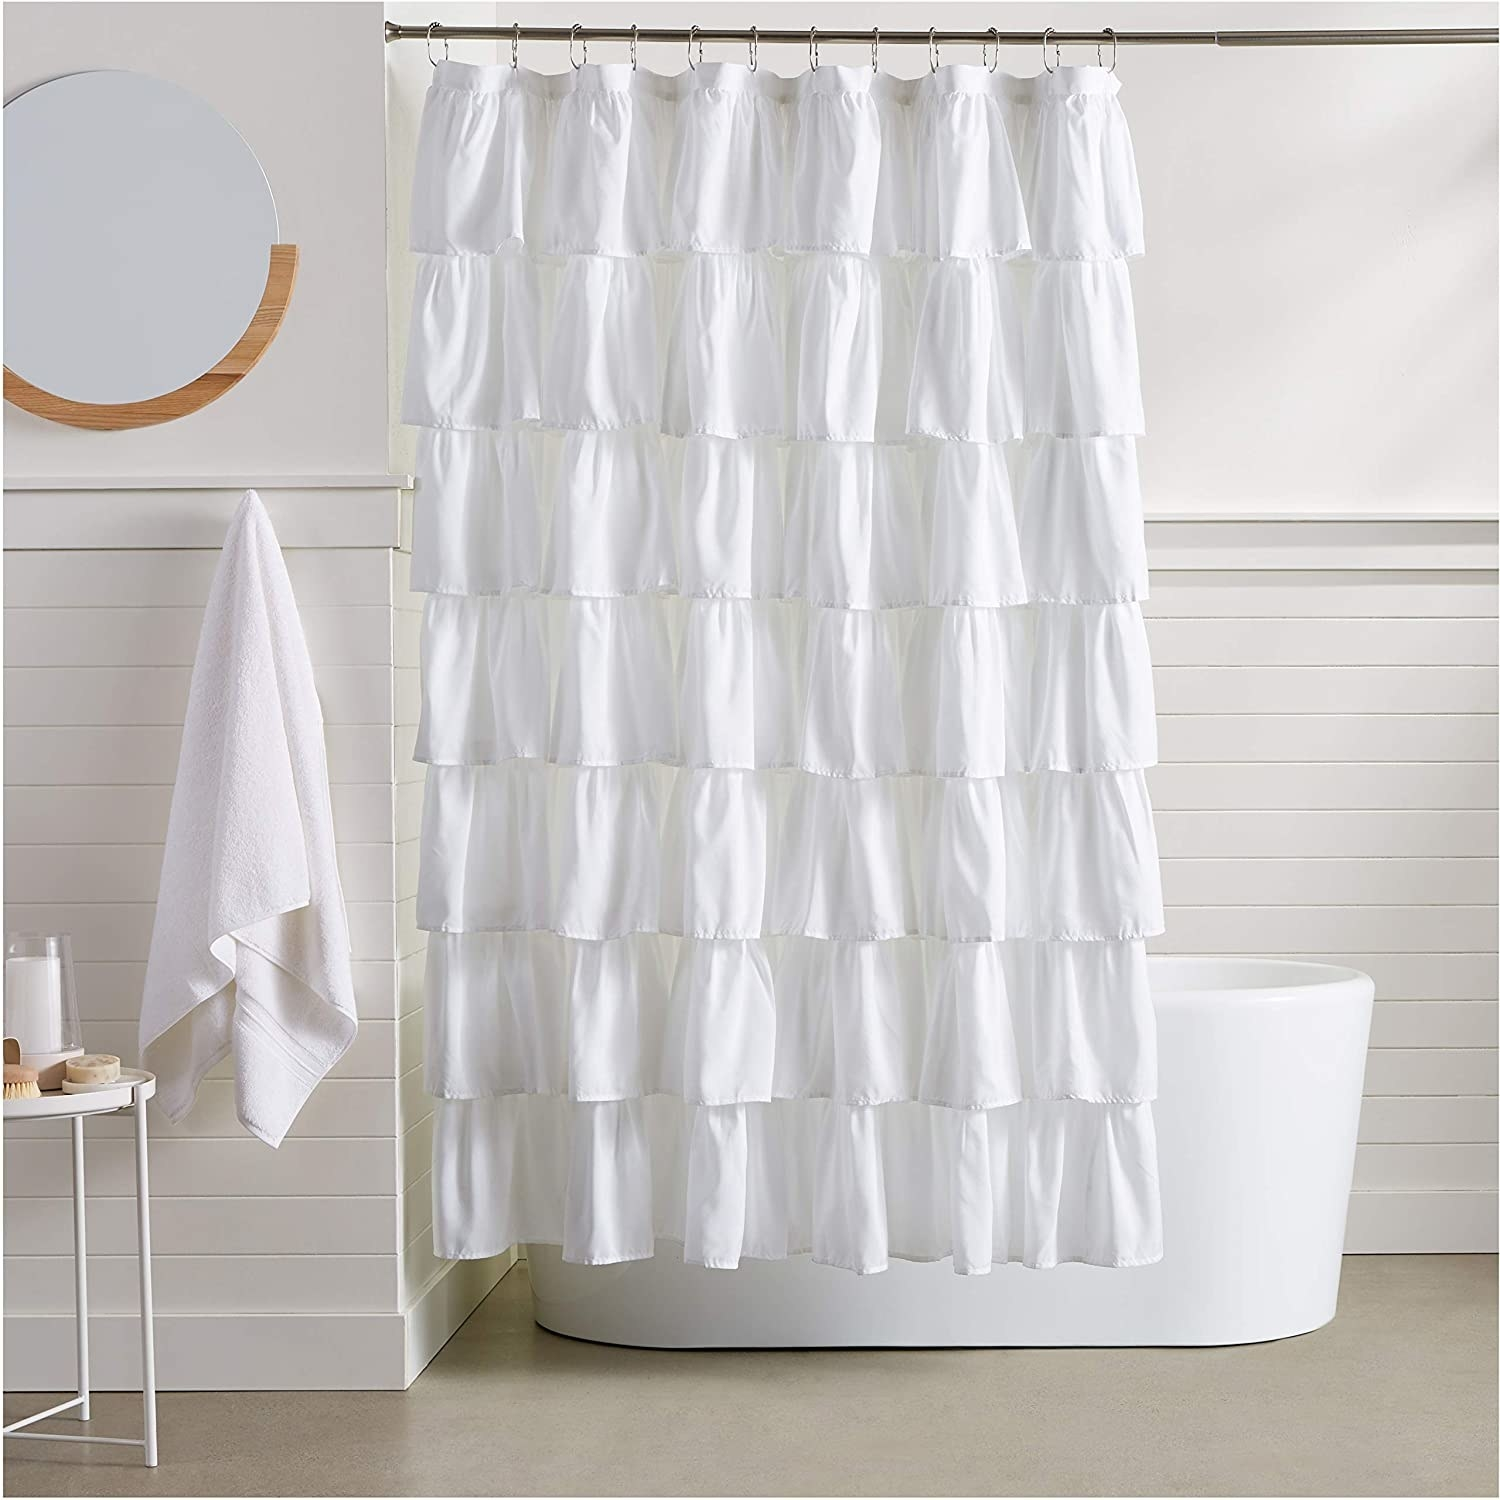 A ruffled shower curtain in front of a bathtub